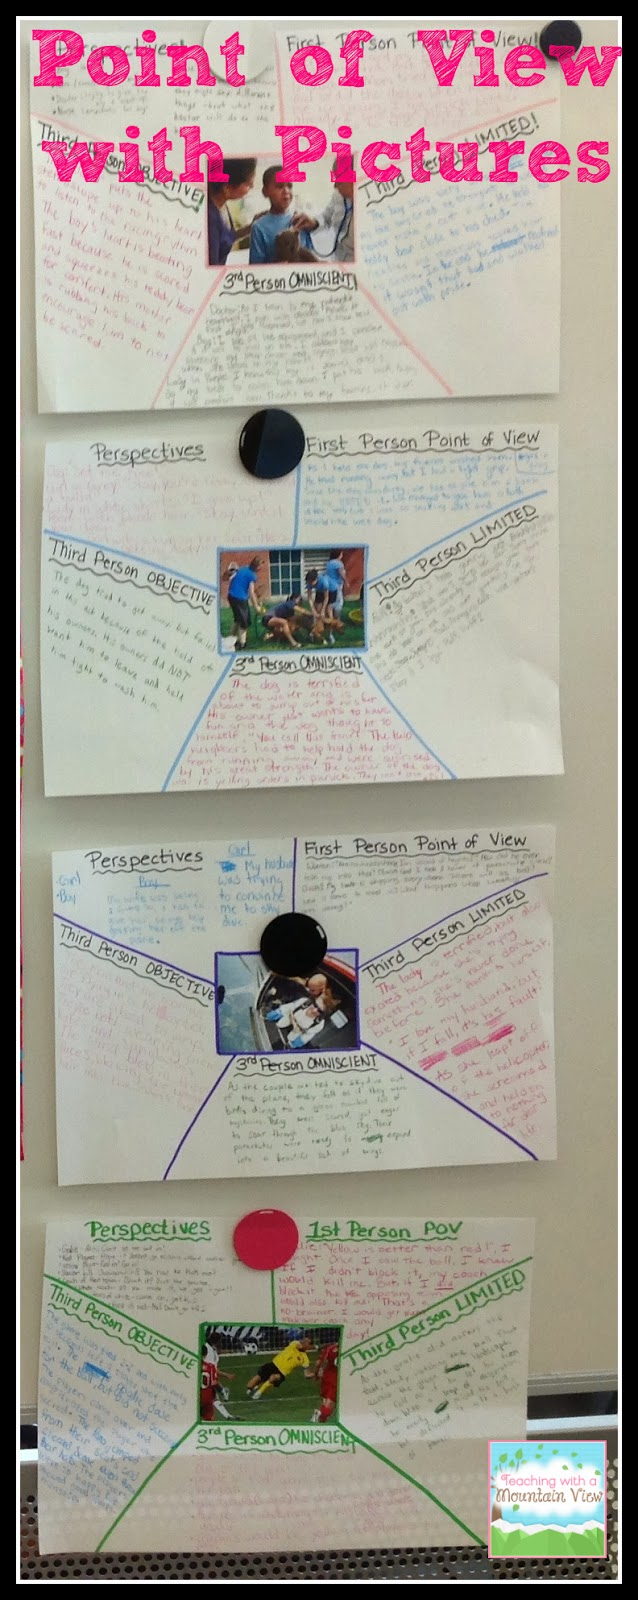 Teaching With a Mountain View Teaching Point of View – Point of View Worksheets 4th Grade